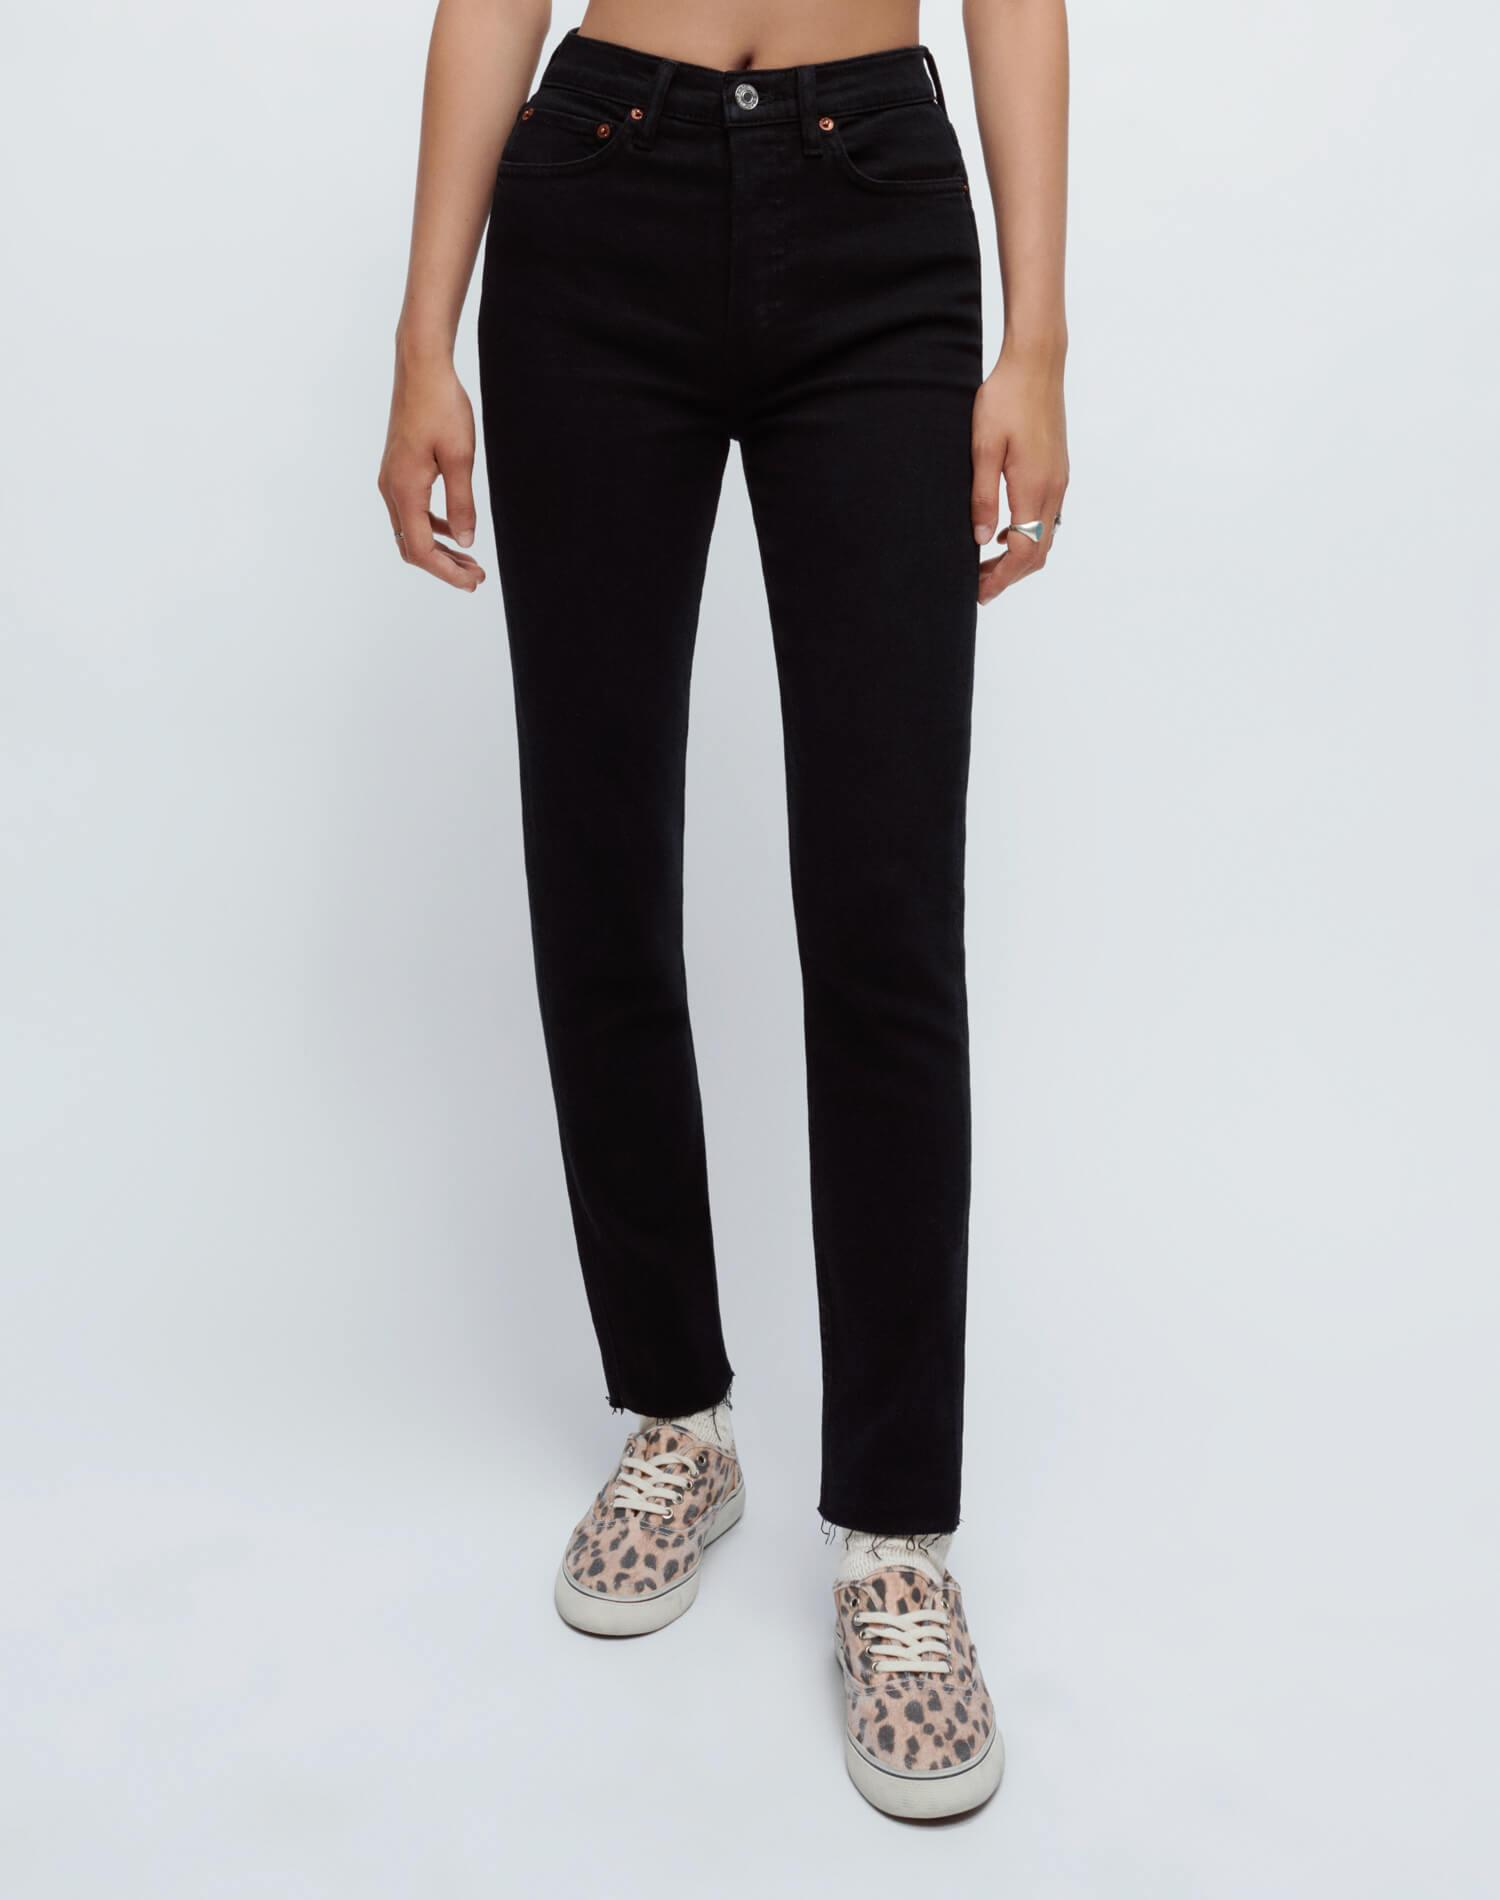 Extra Stretch High Rise Ankle Crop - Jet Blue Black